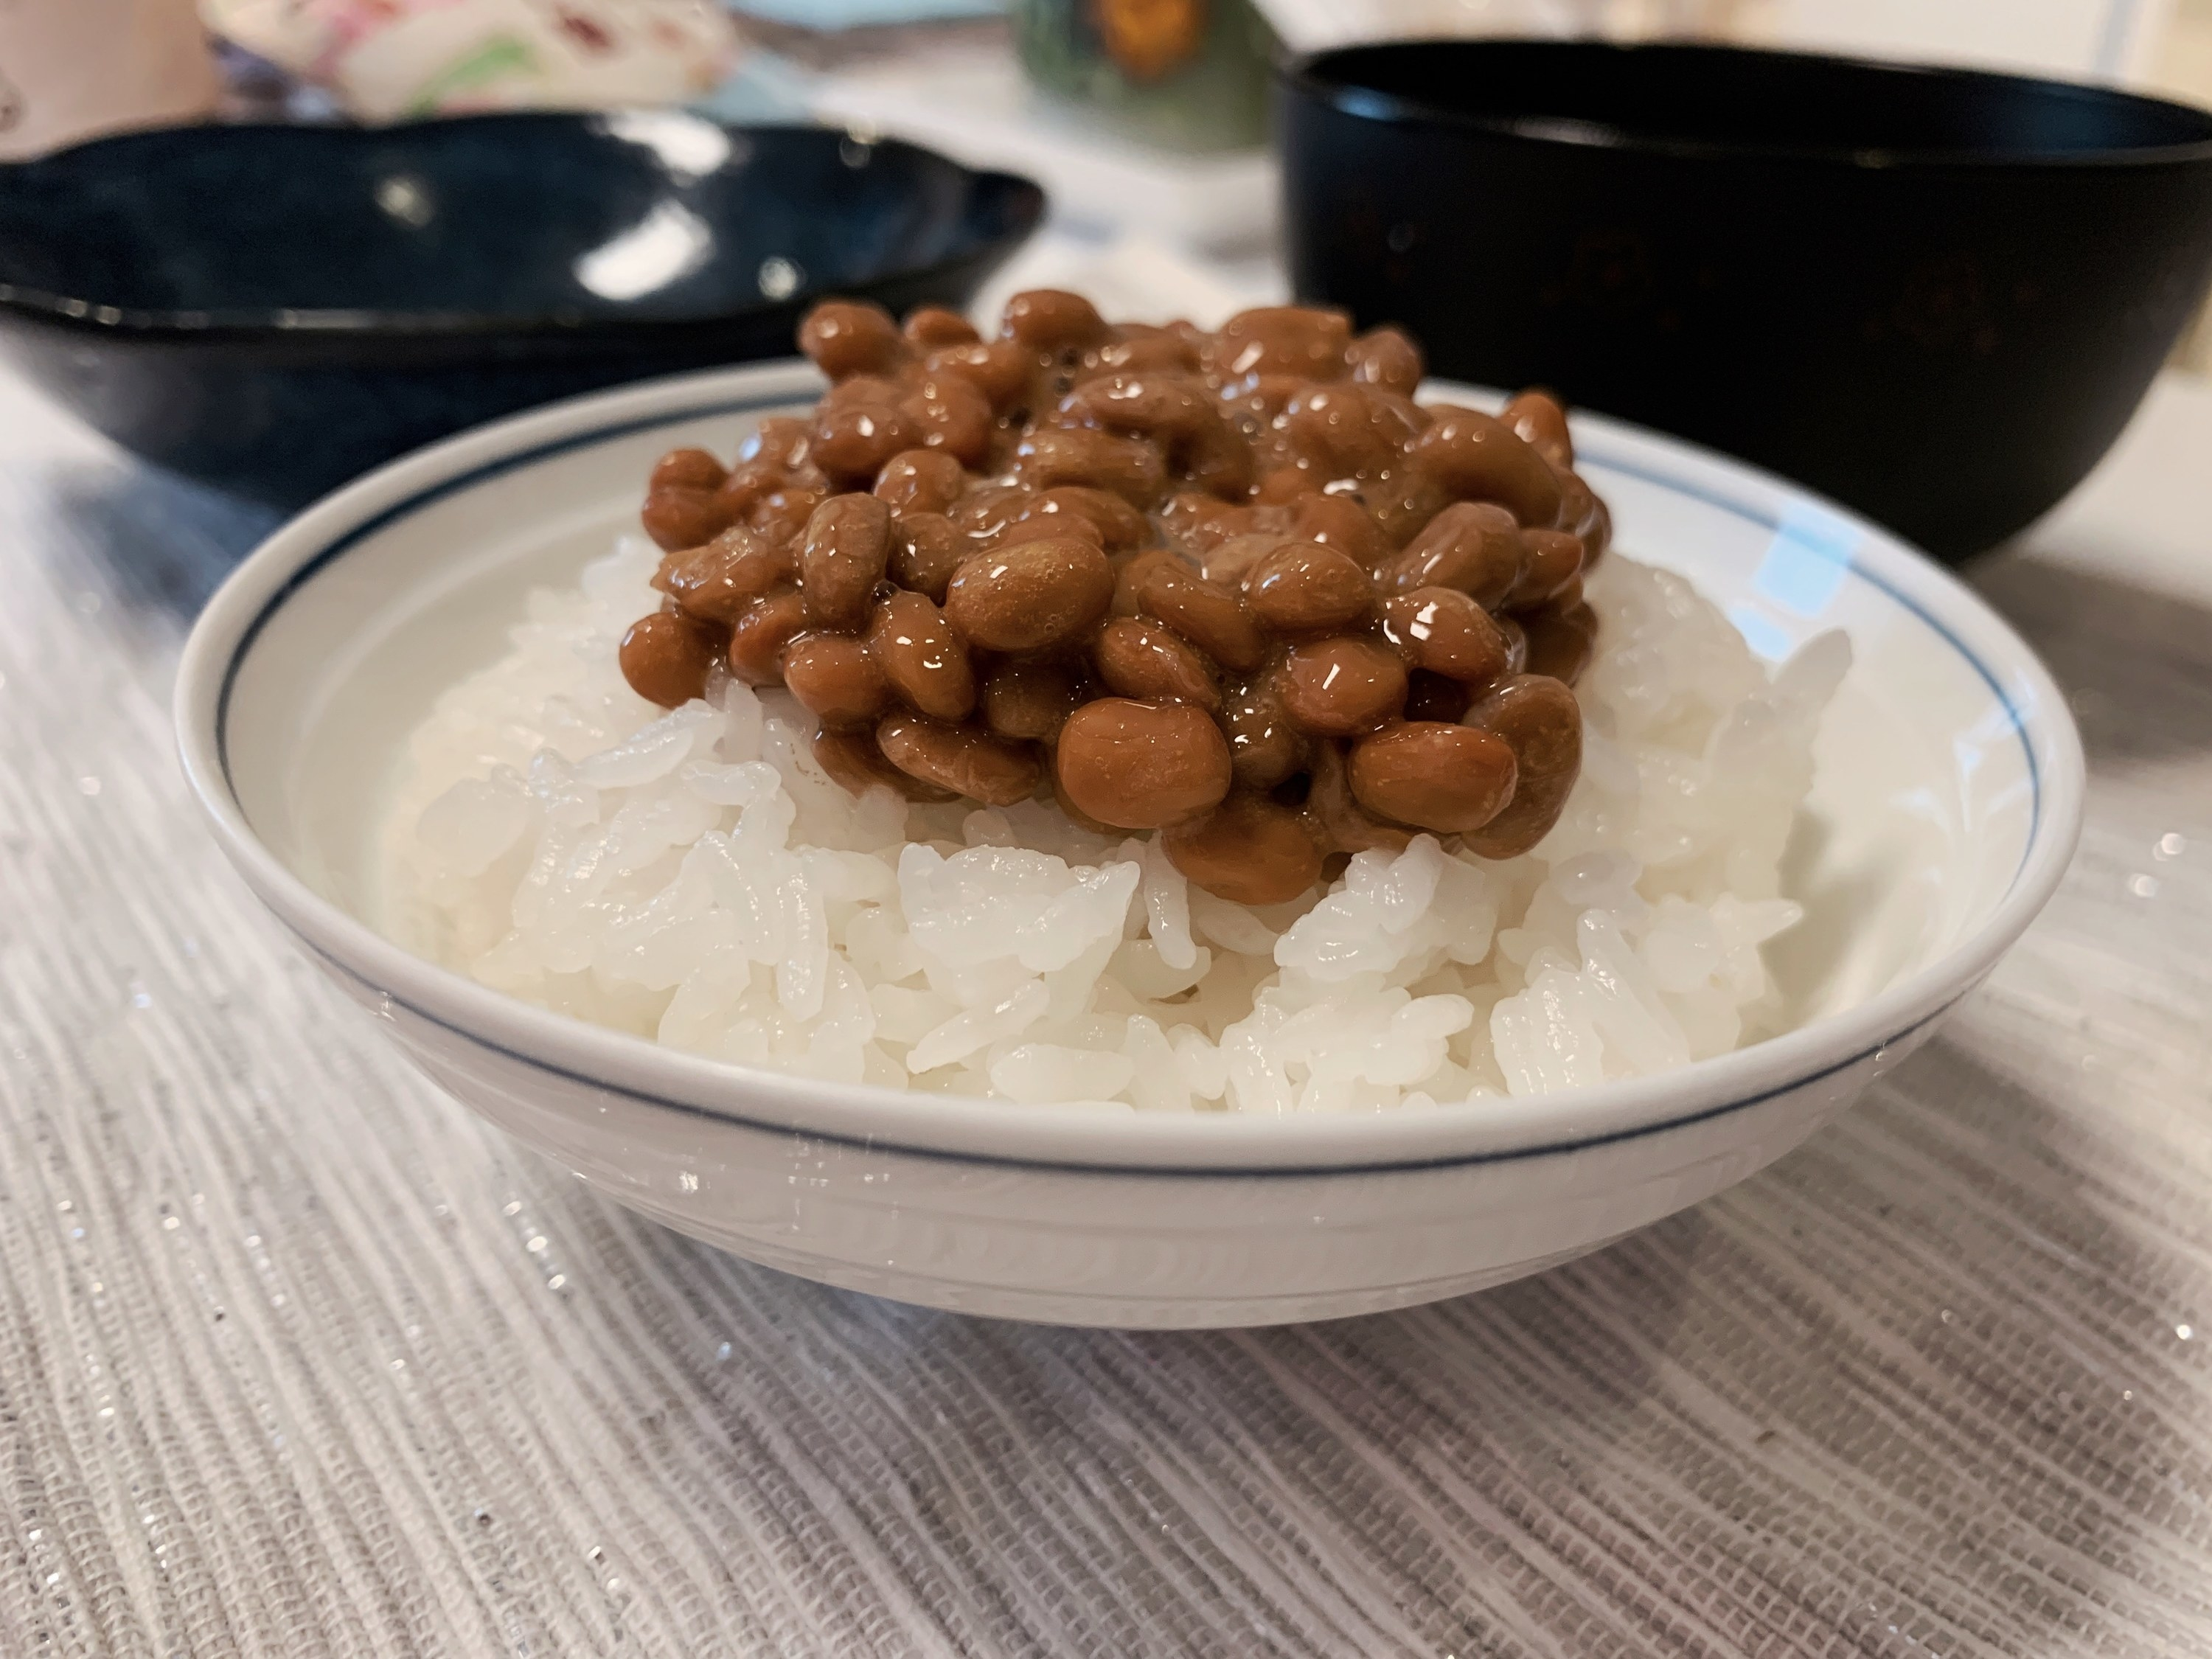 A bowl filled with rice and fermented soy beans